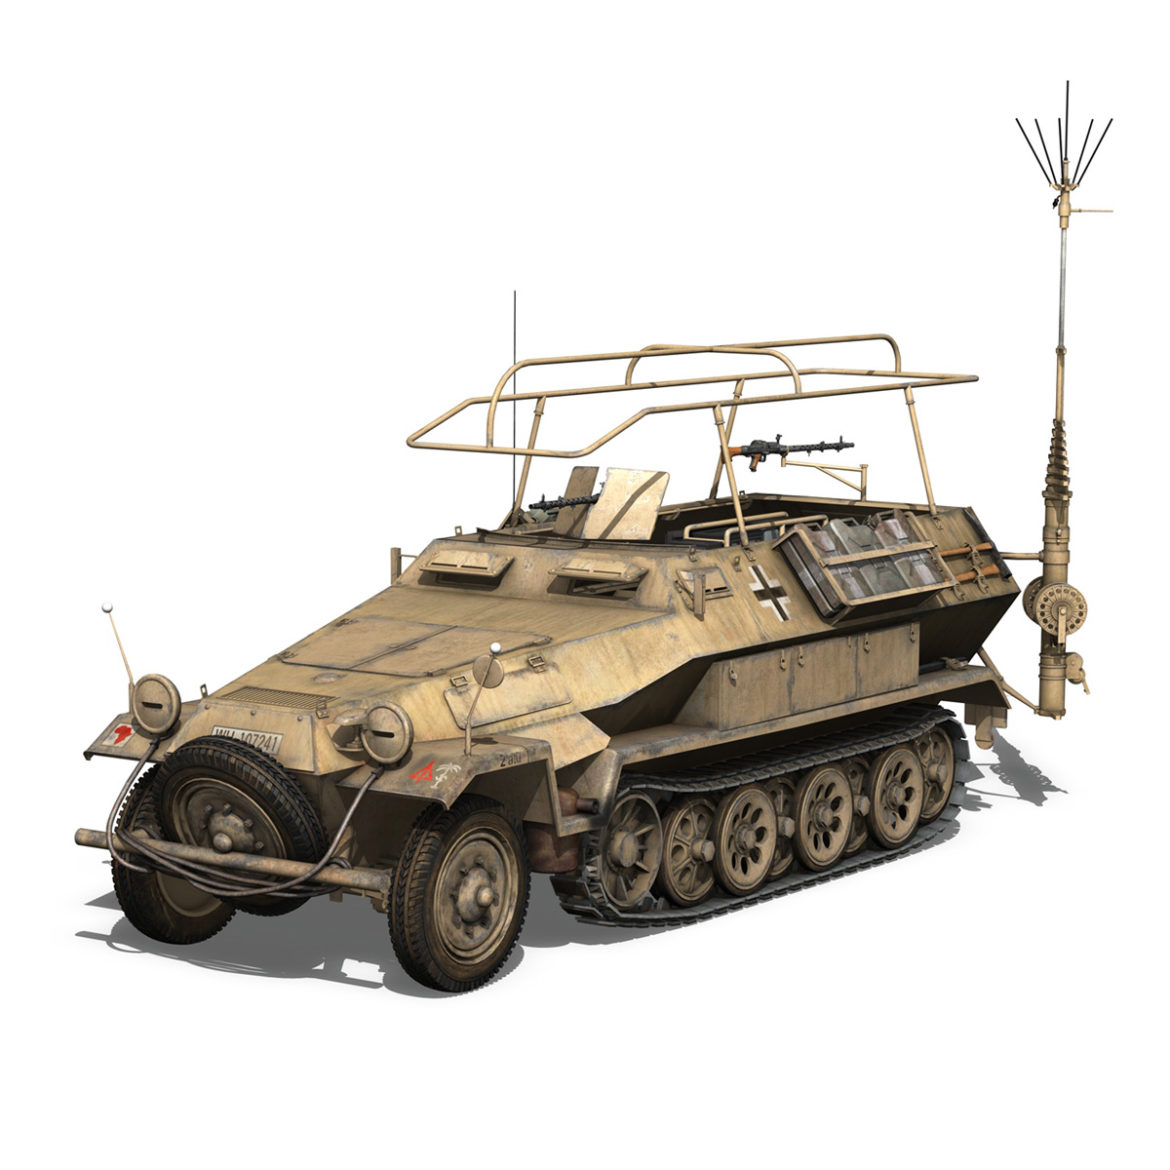 sdkfz 251 ausf.b – communications vehicle – 15pd 3d model 3ds fbx lwo lw lws obj c4d 305986